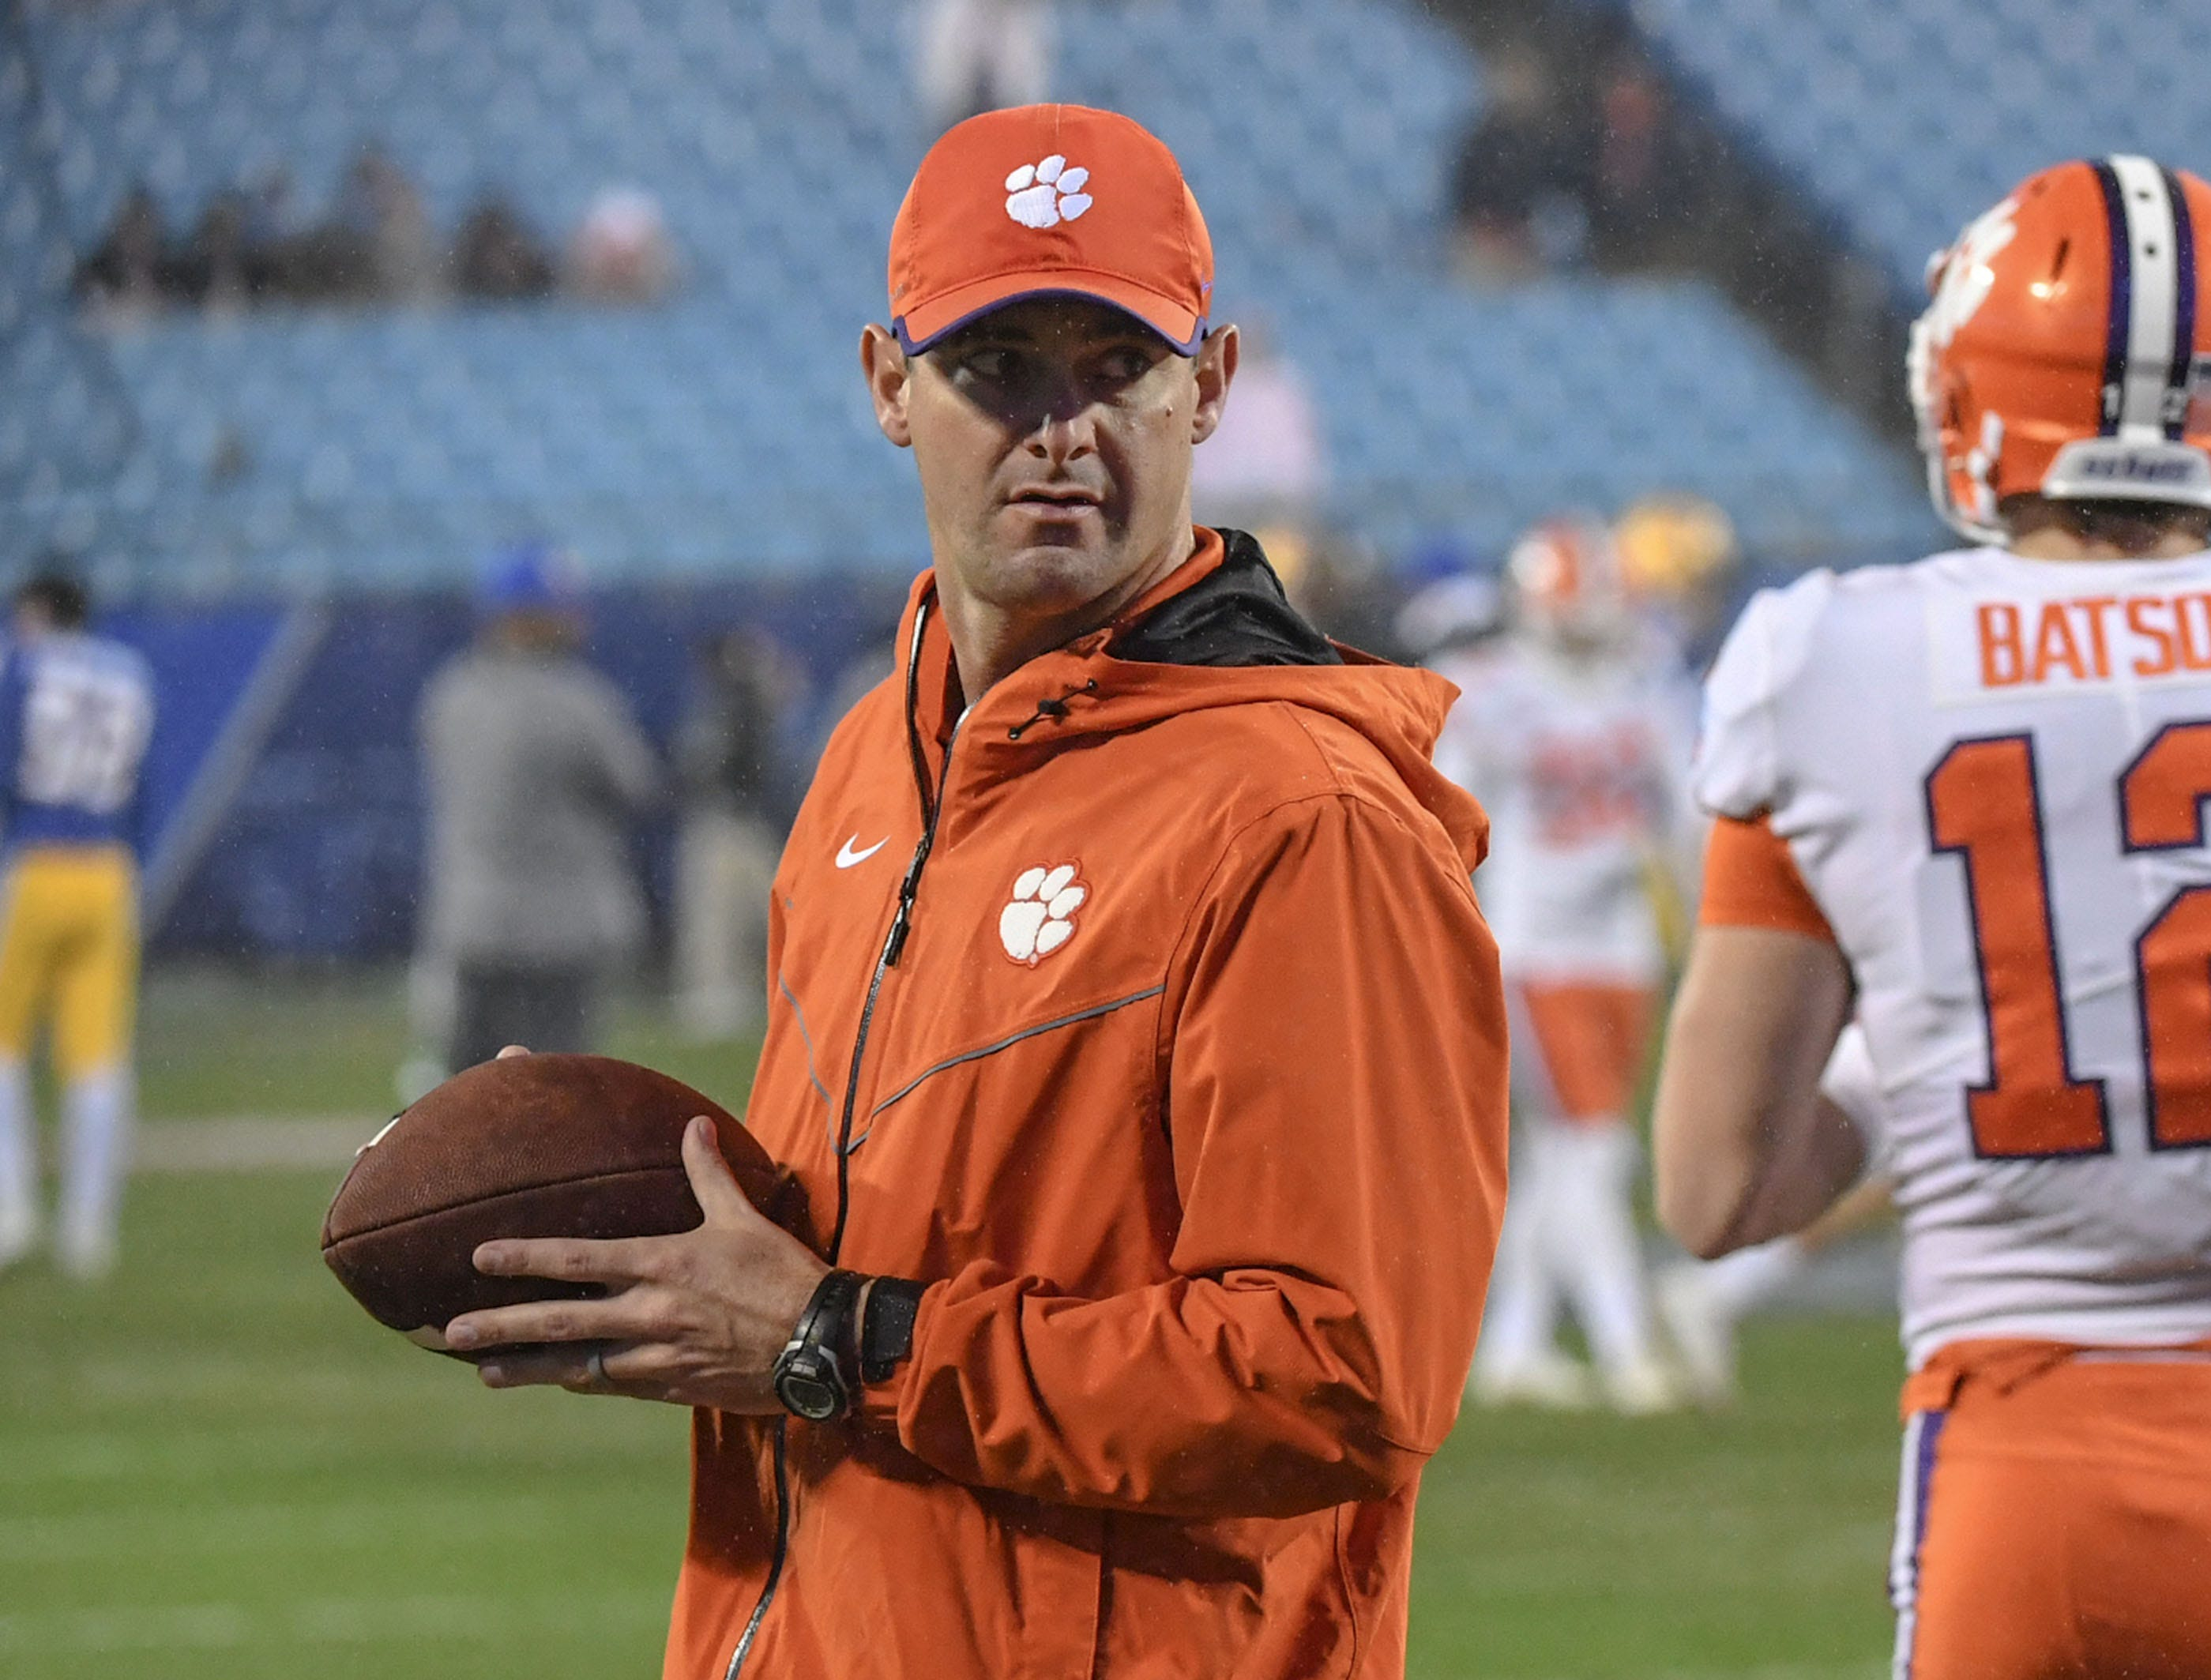 Clemson co-offensive coordinator Jeff Scott before the game of the Dr. Pepper ACC football championship at Bank of America Stadium in Charlotte, N.C. on Saturday, December 1, 2018.